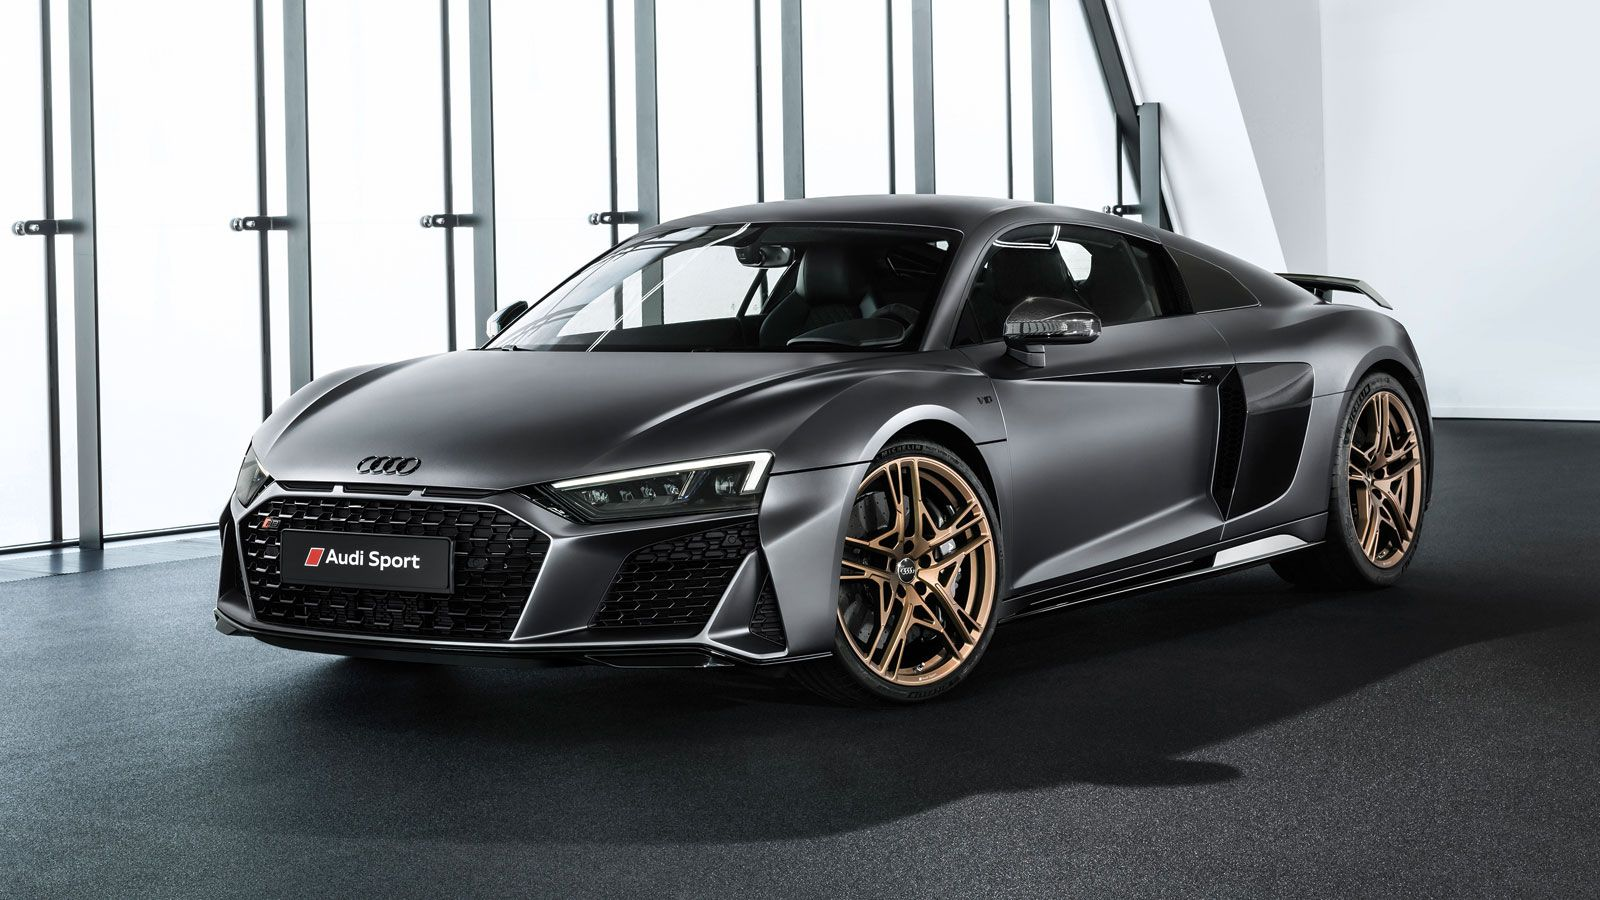 2021 Audi R8 Release Date and Concept